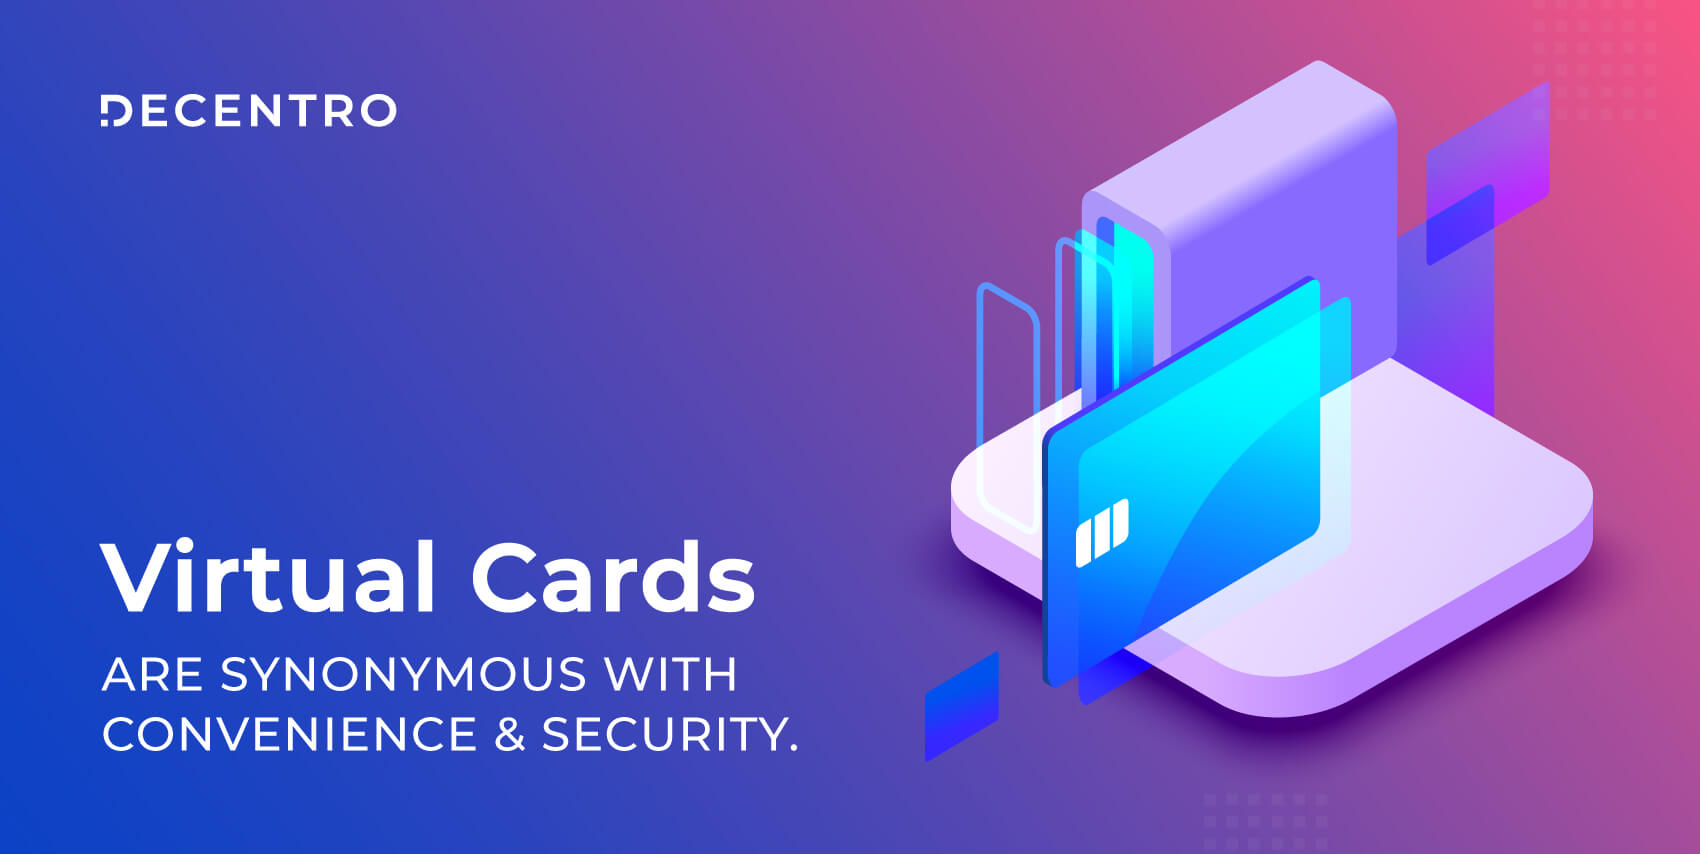 Virtual Cards Are Synonymous With Convenience & Security and here's why.